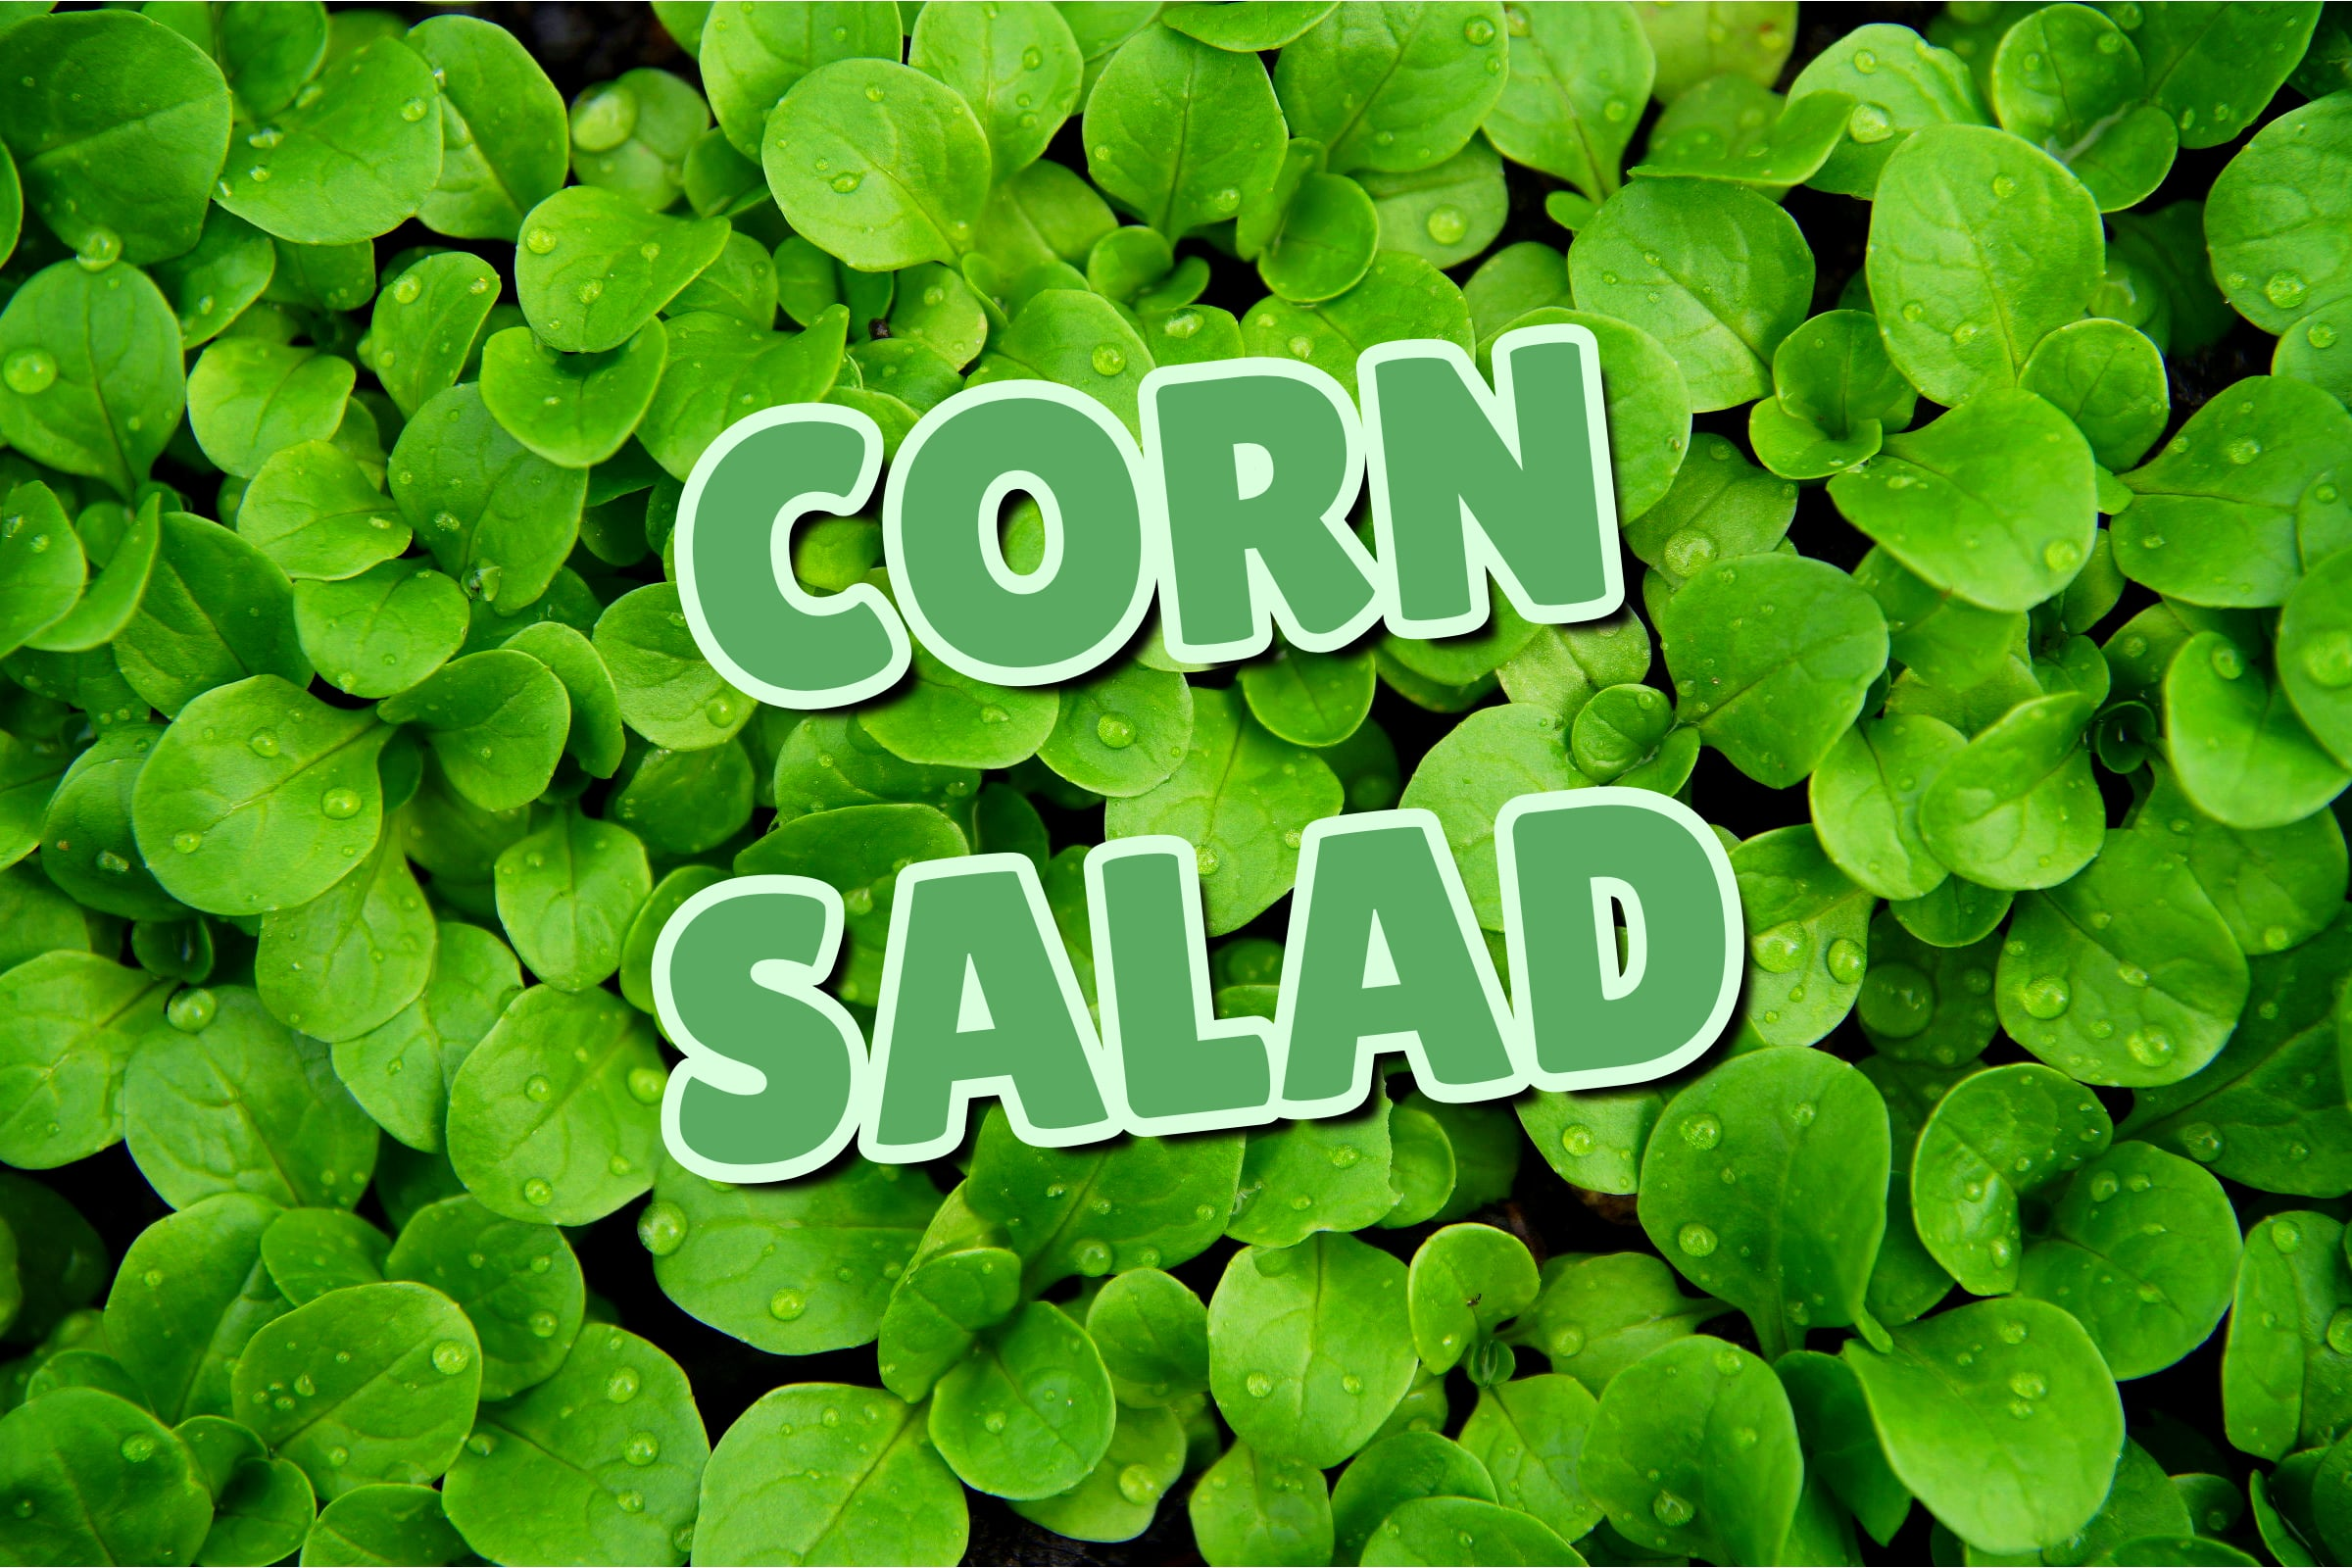 What Is The Corn Salad Plant?